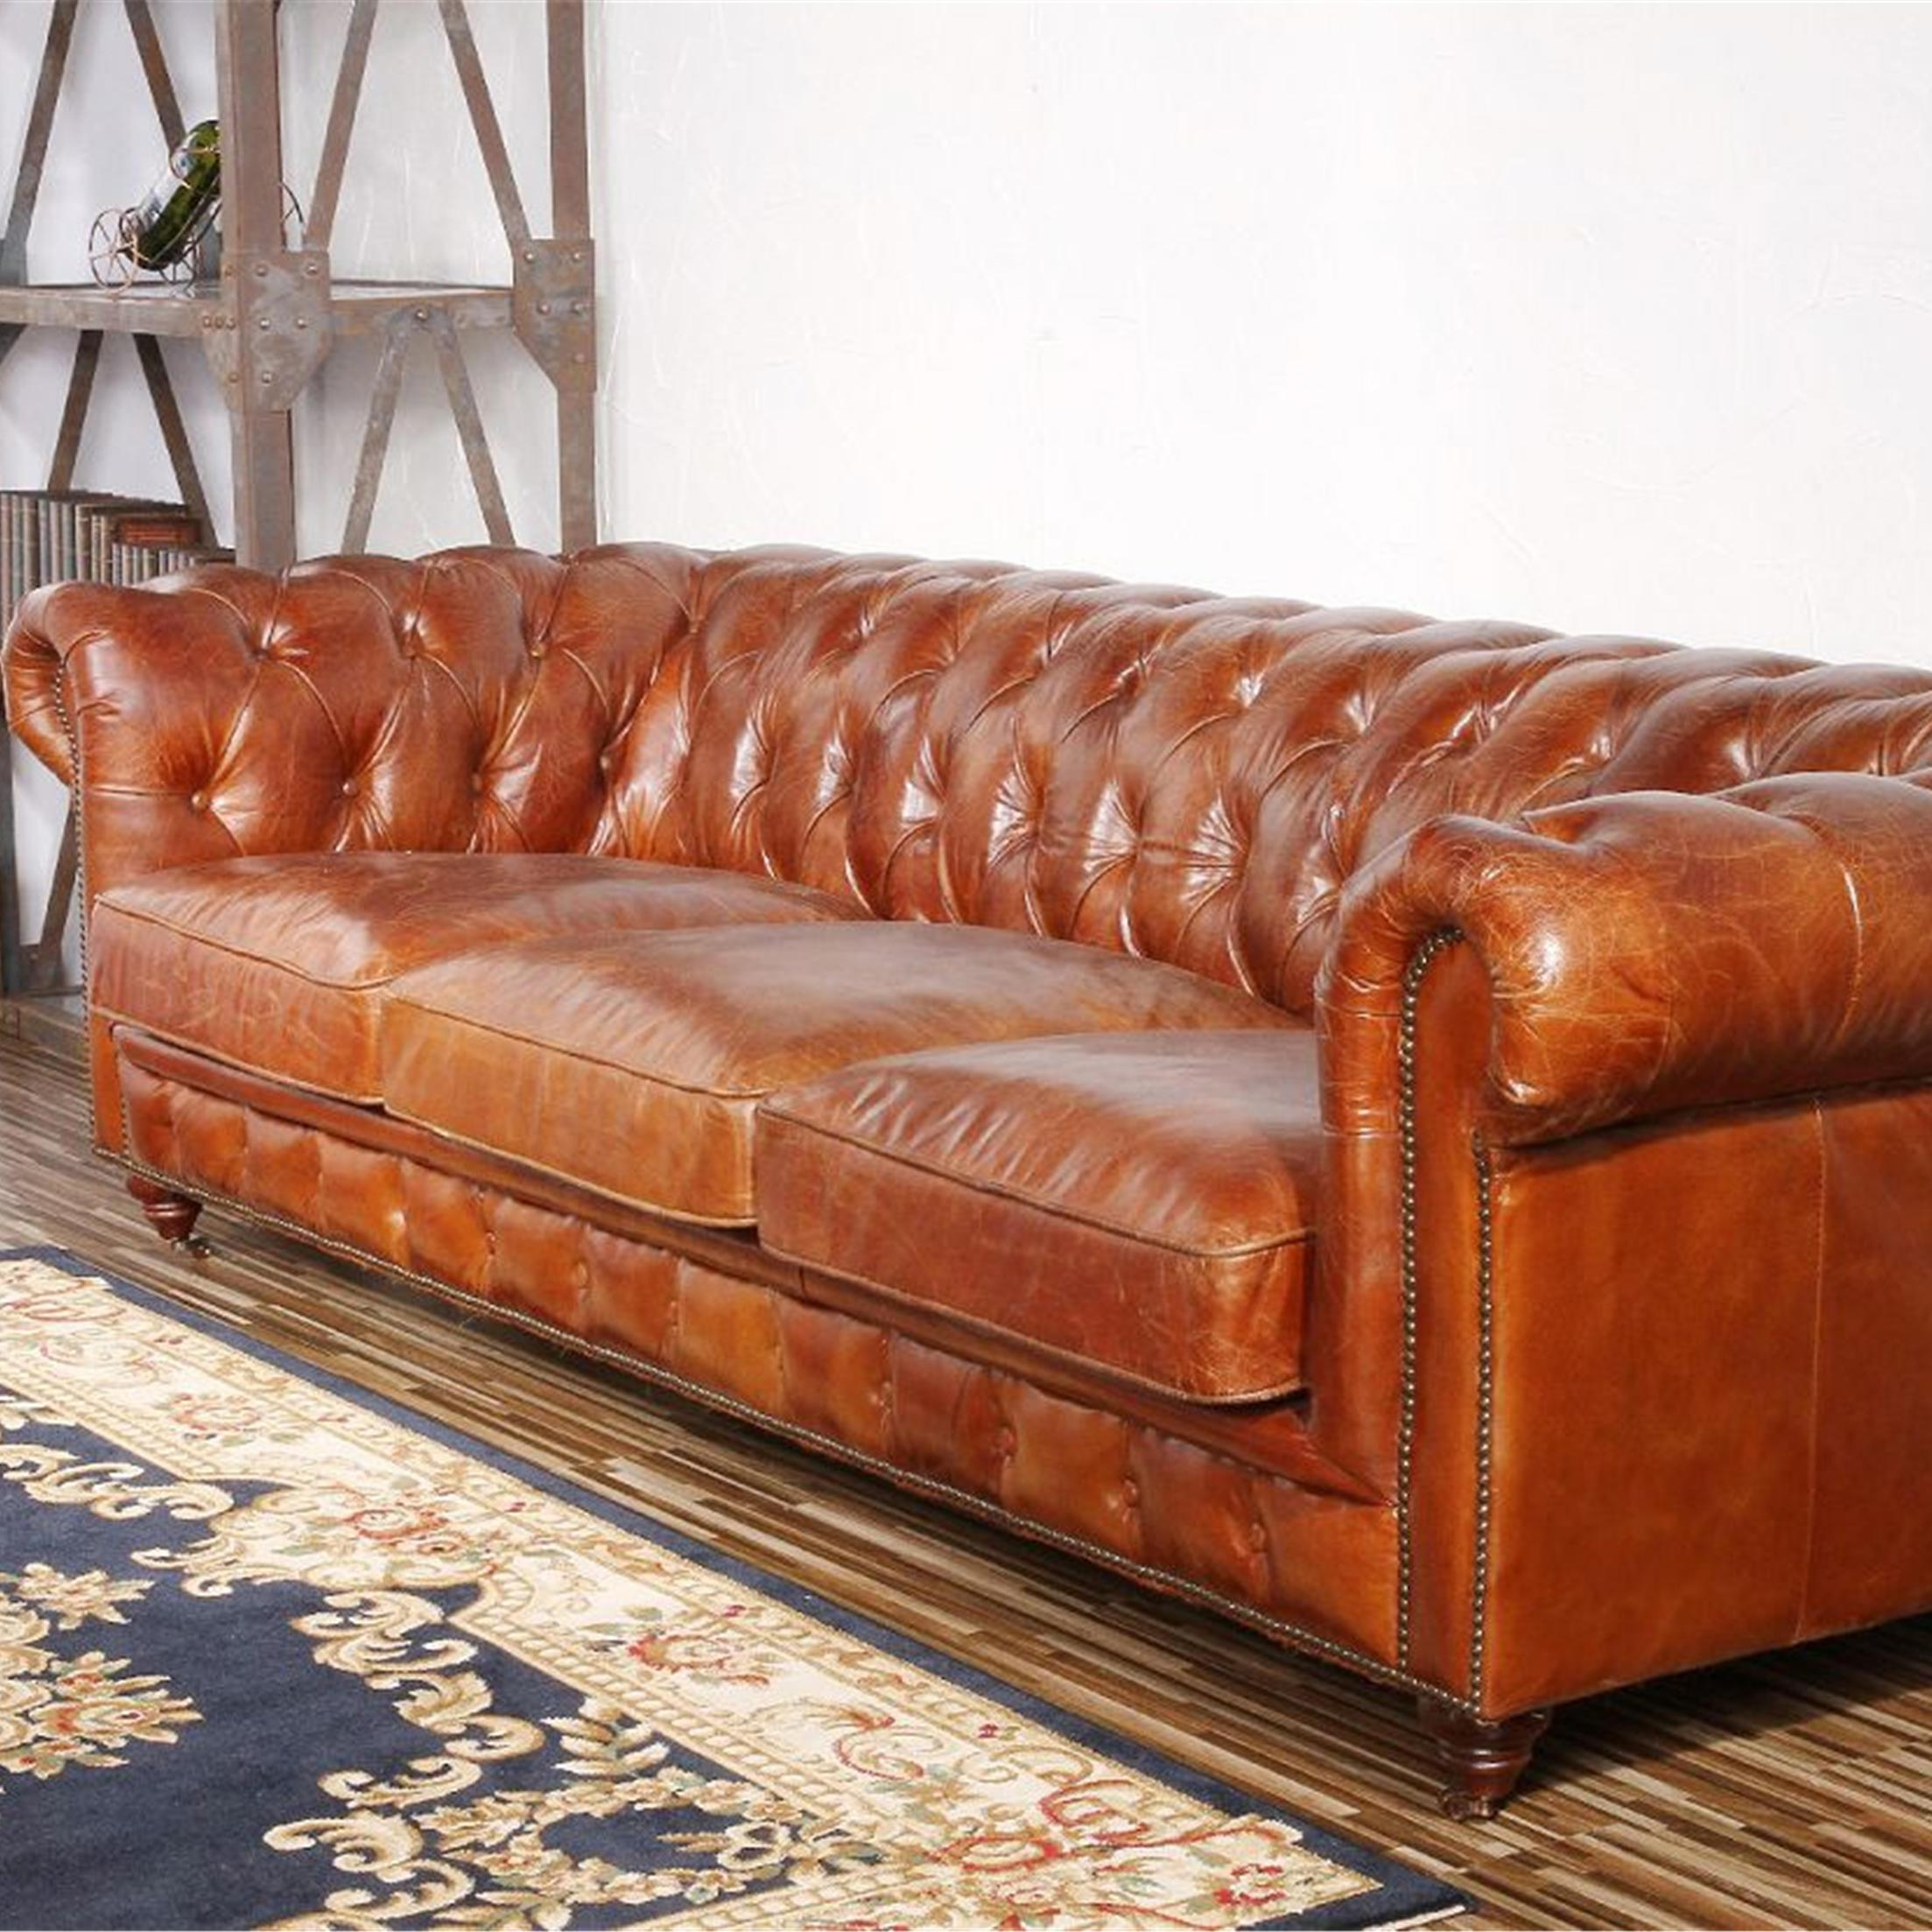 Tufted Leather Sofa Bed: 20 Ideas Of Caramel Leather Sofas